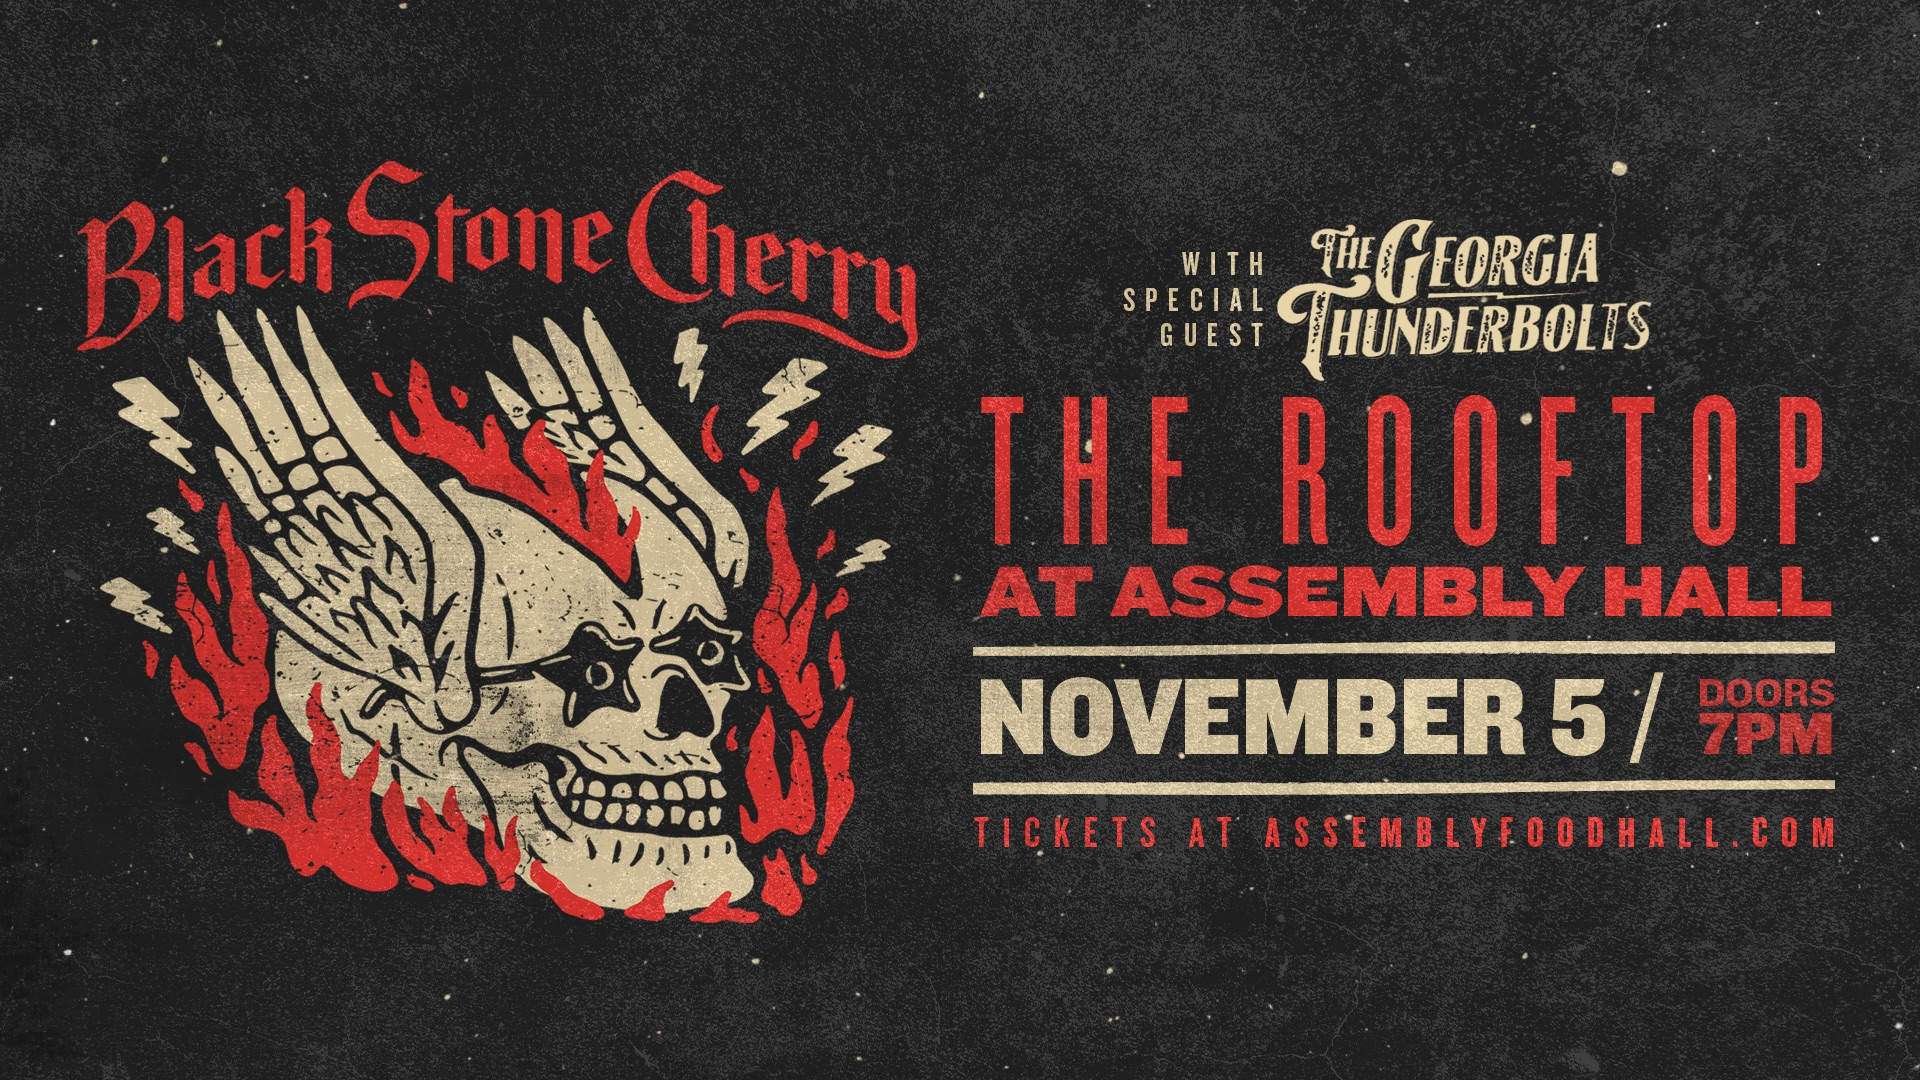 Promo image of Black Stone Cherry on the Skydeck